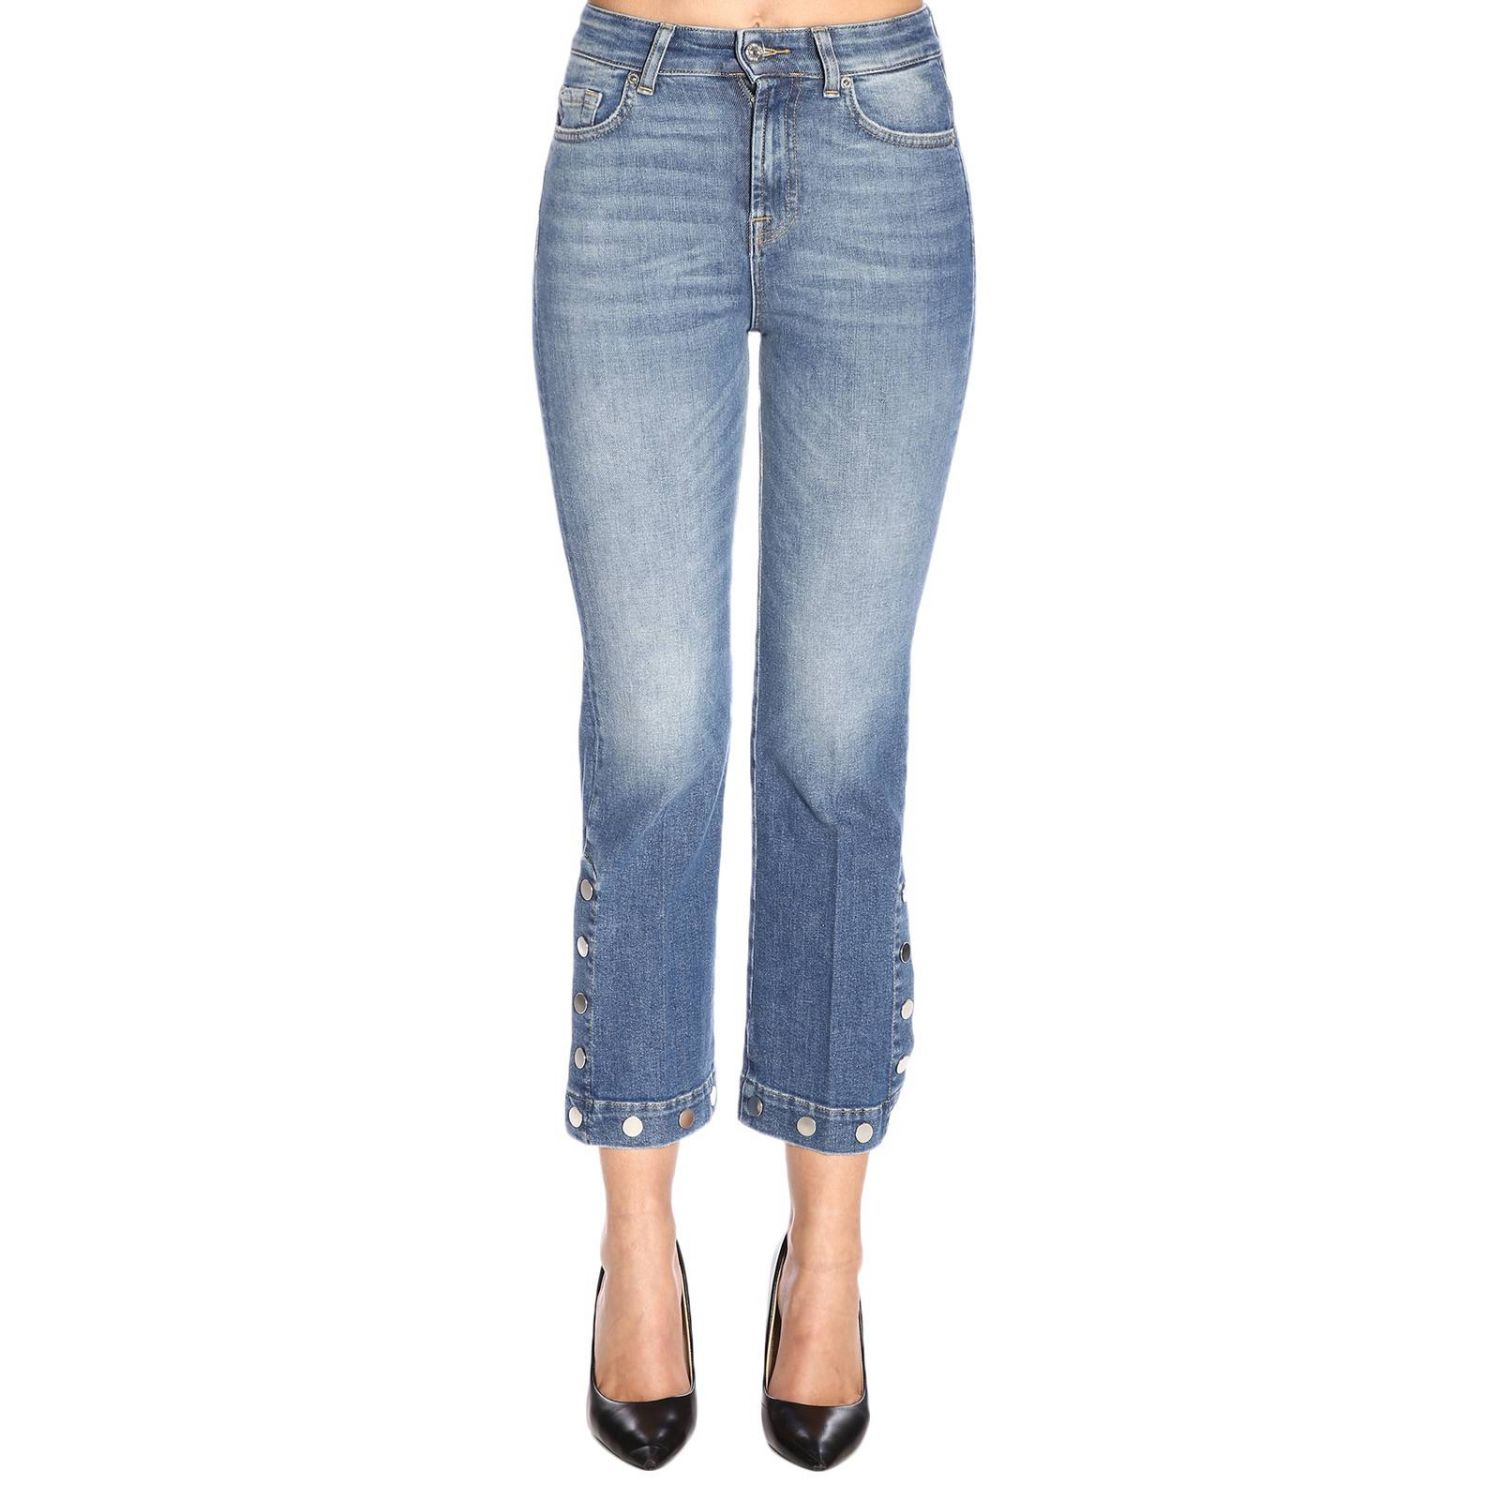 Jeans 7 For All Mankind a 5 tasche stretch used a trombetta blue 1